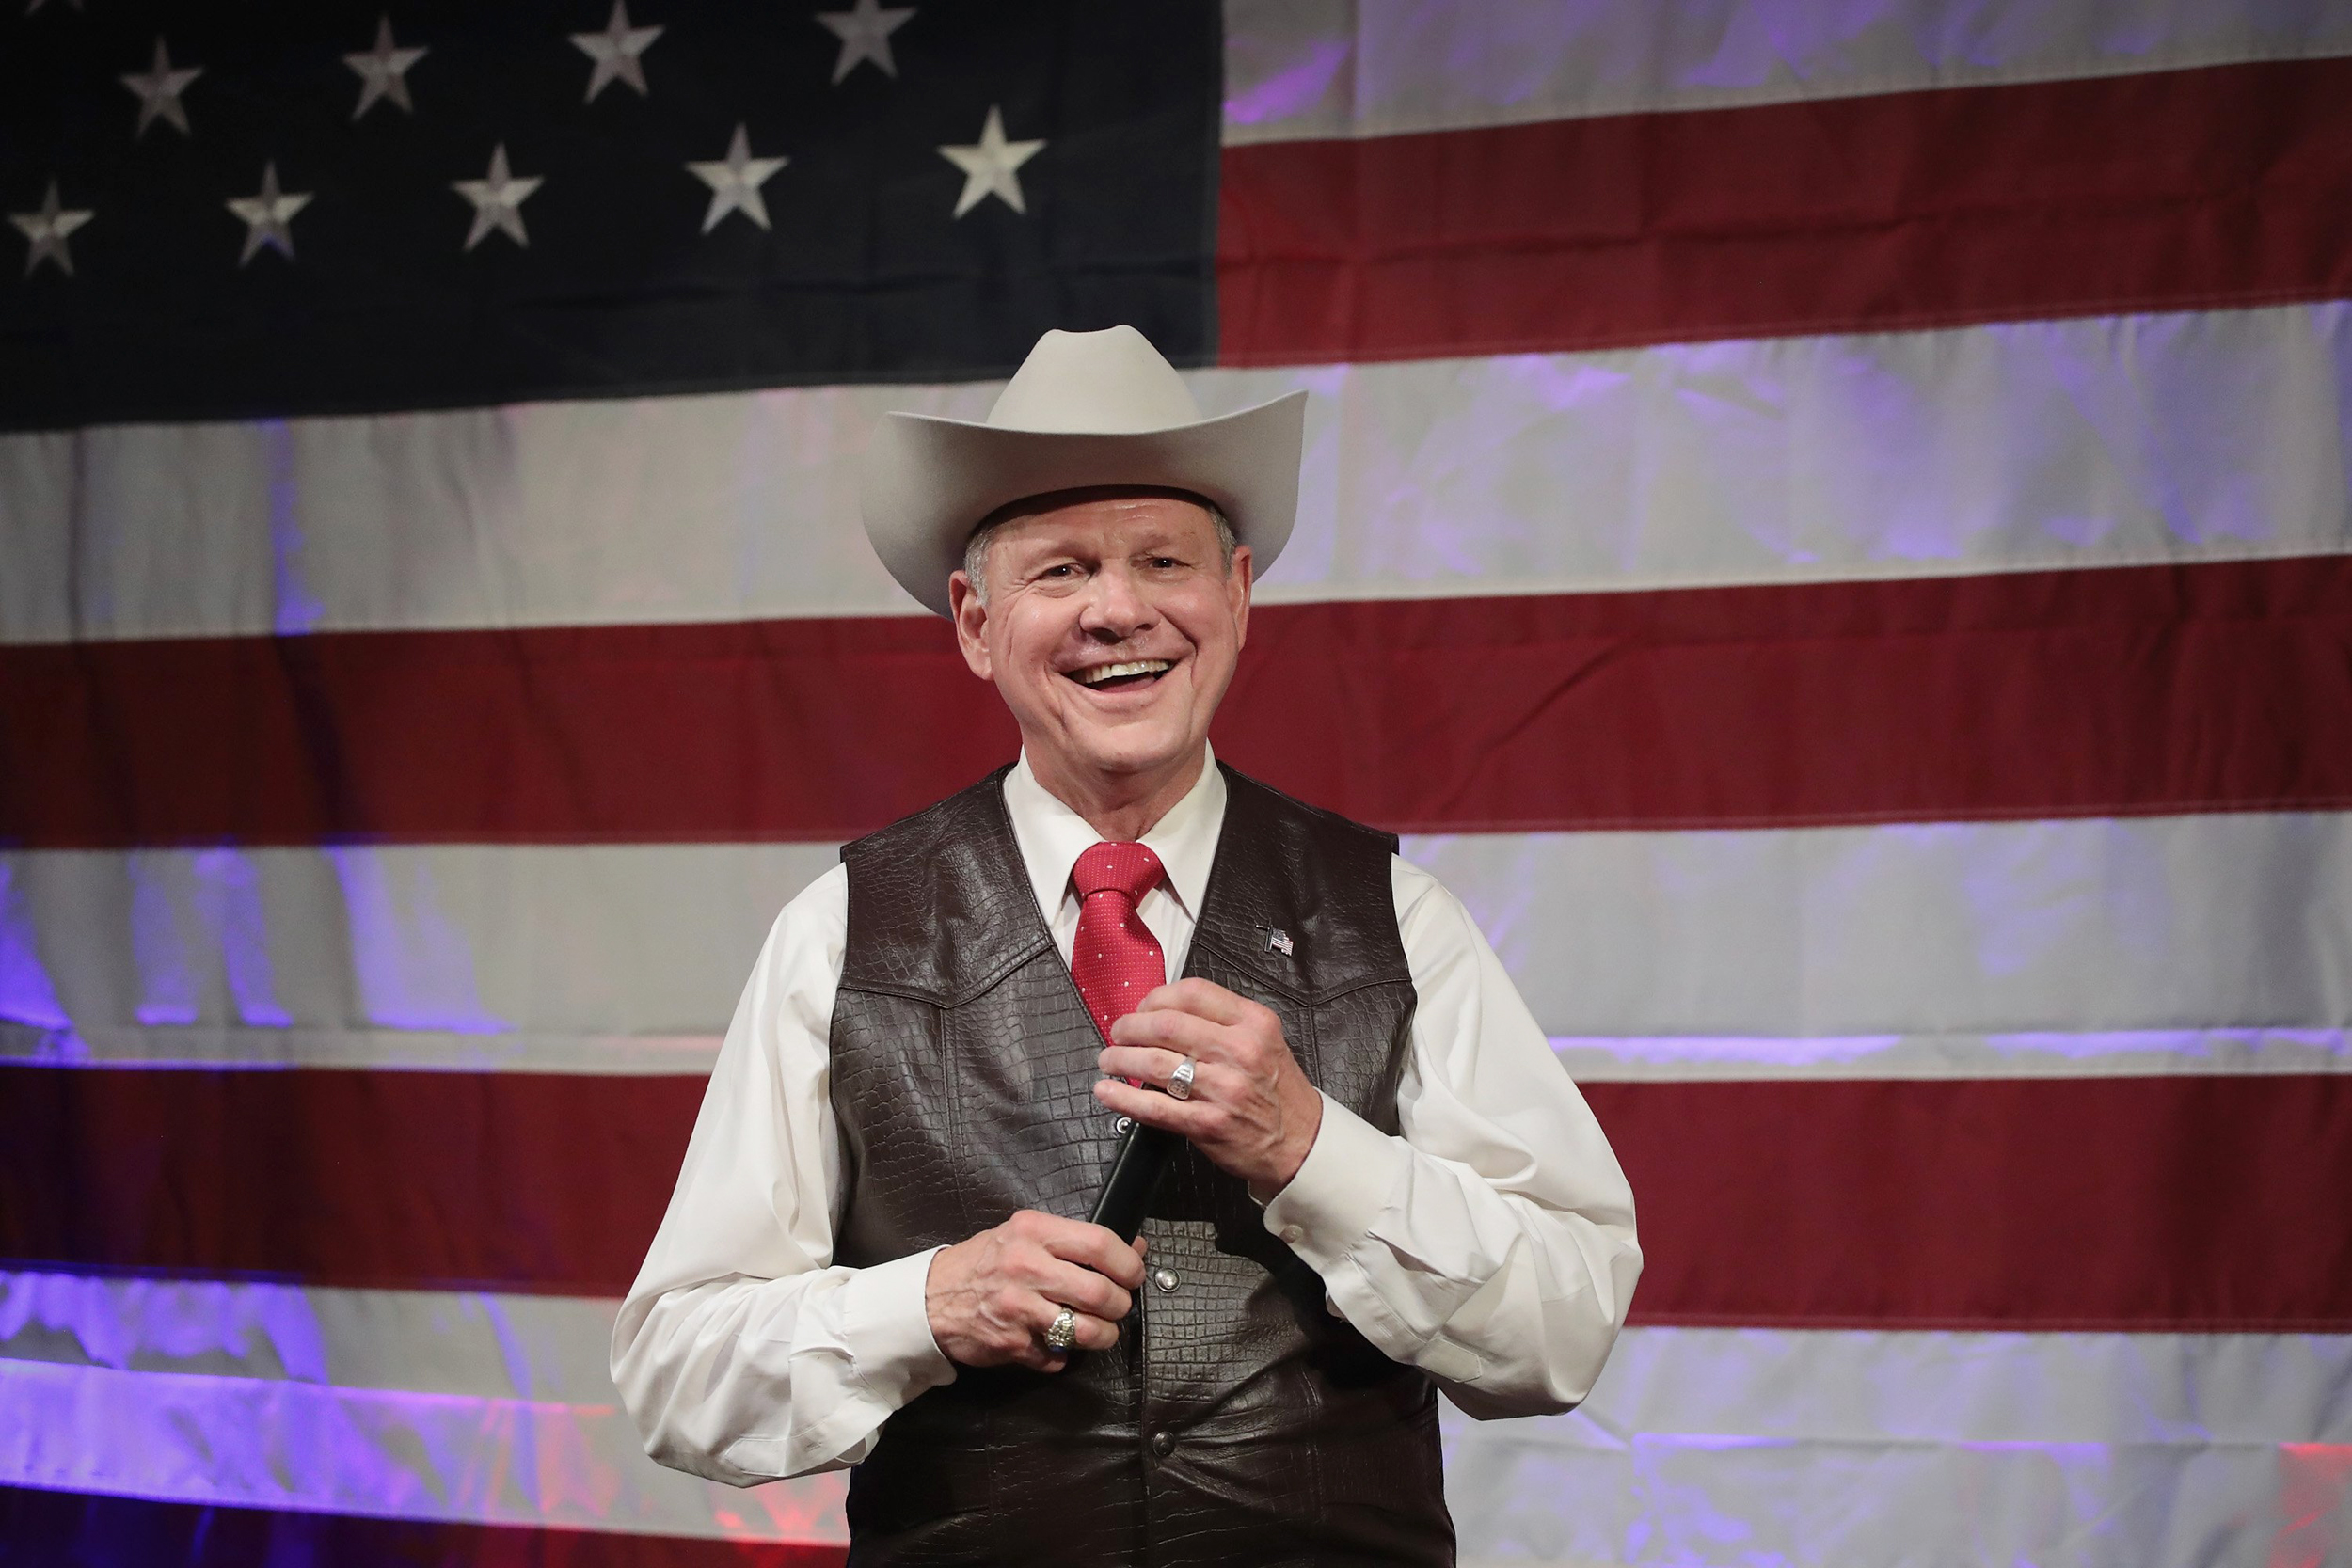 Image: Republican candidate for the U.S. Senate in Alabama, Roy Moore, speaks at a campaign rally